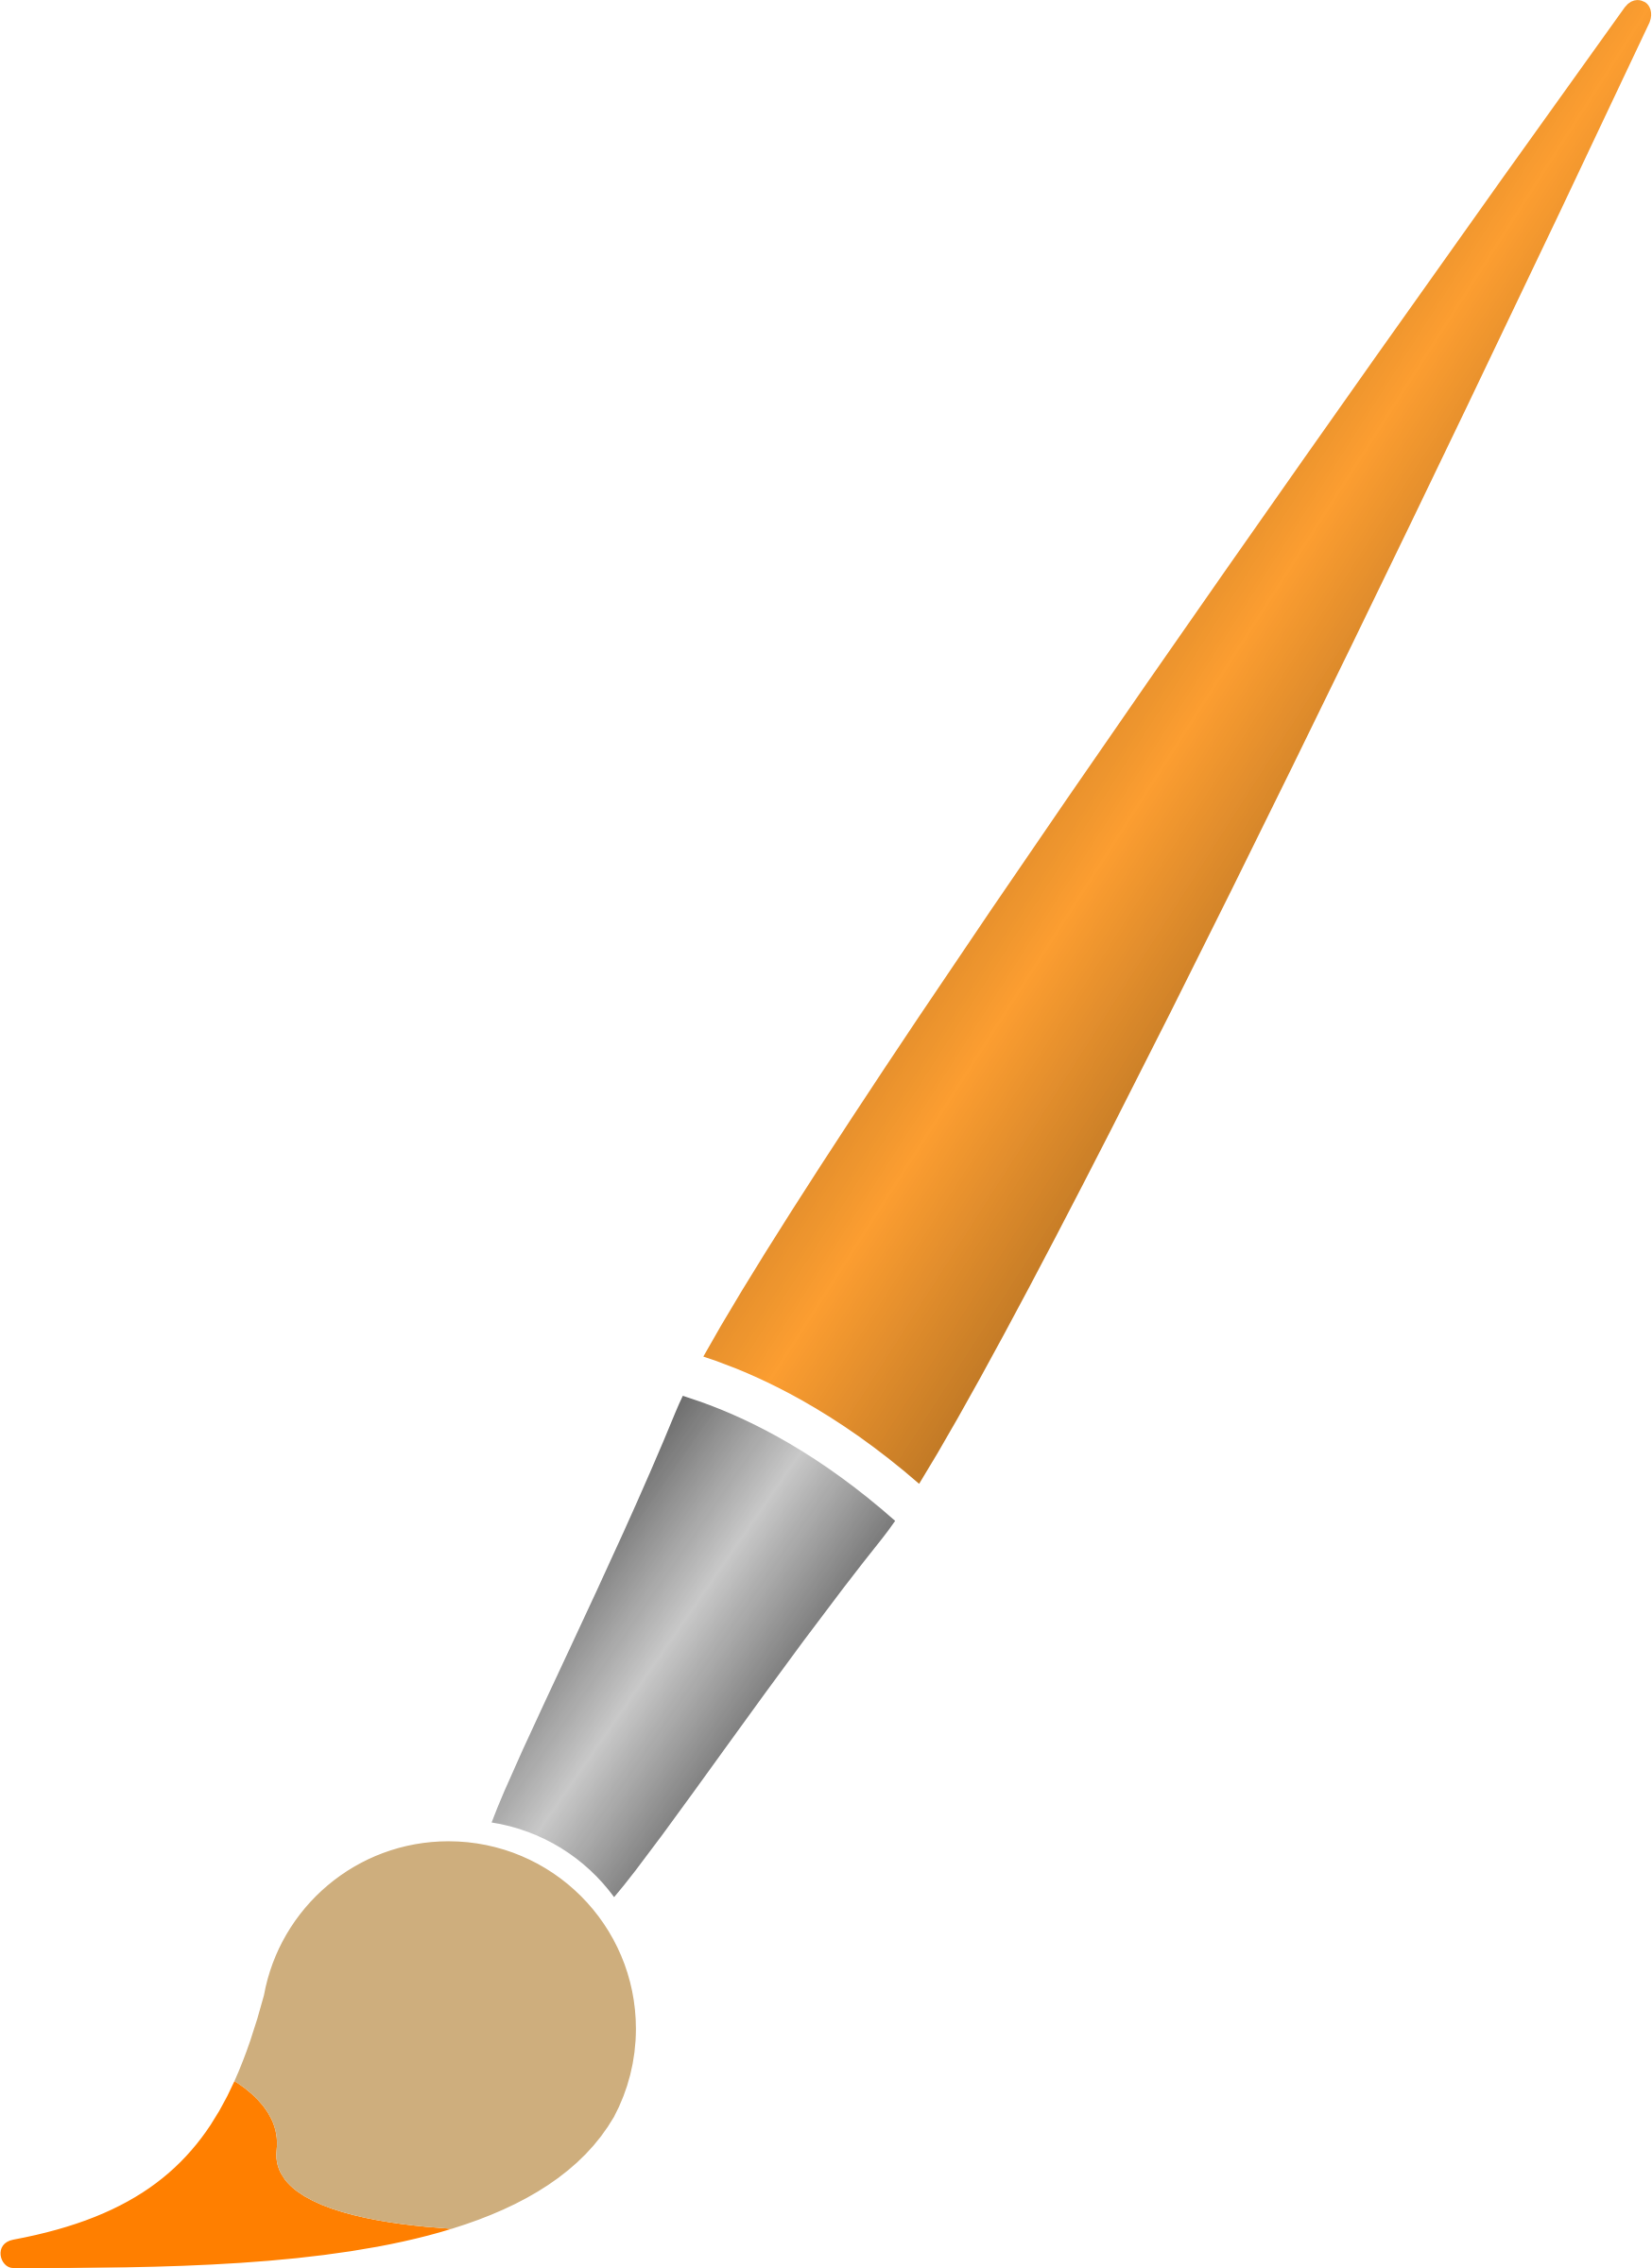 Paint Brush with Orange Dye by Astro